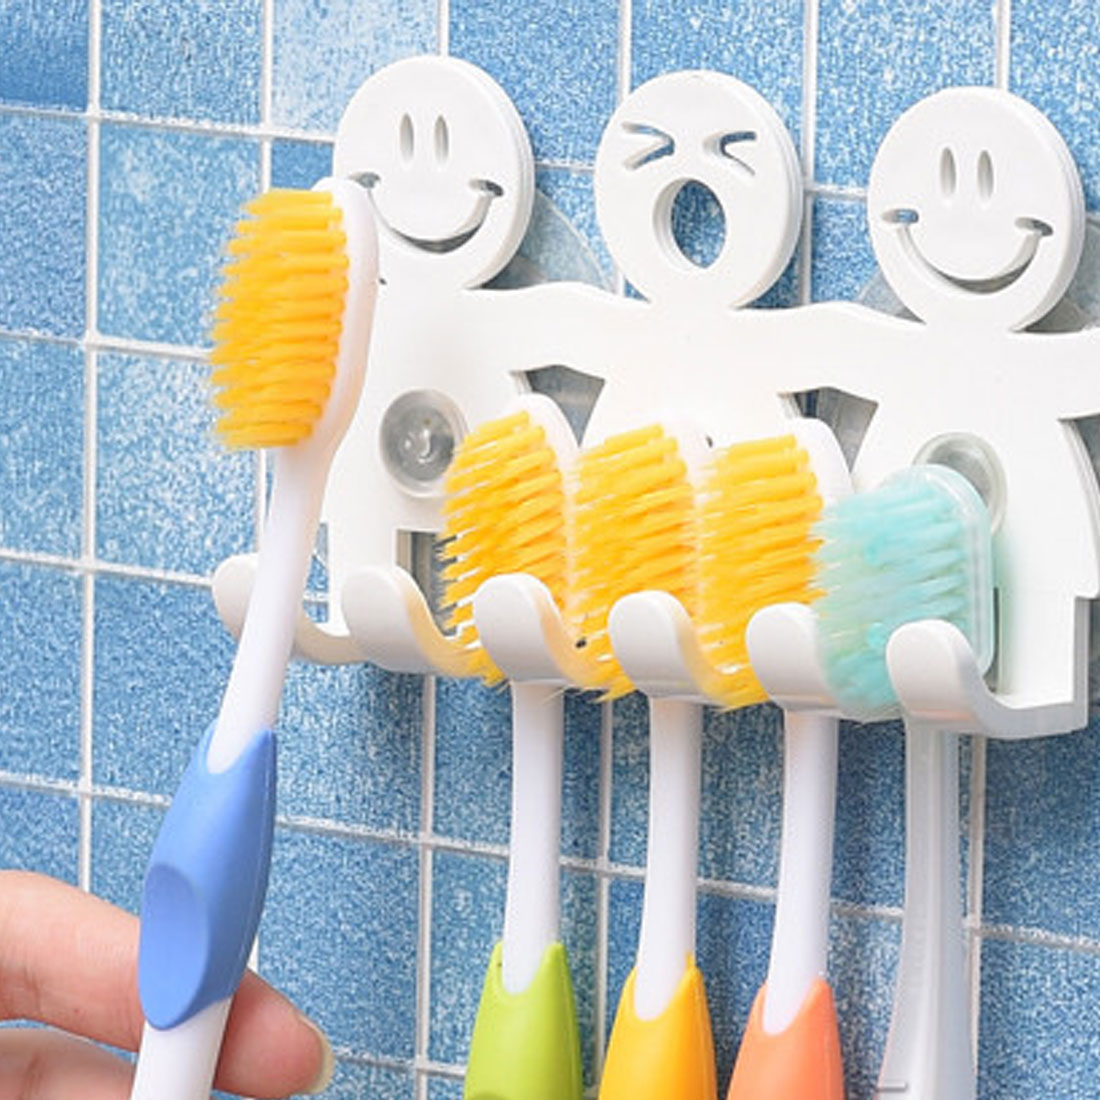 1pcs Suction Hooks 5 Position Tooth Brush Holder Bathroom Sets Cute Smile Cartoon Sucker Toothbrush Holder